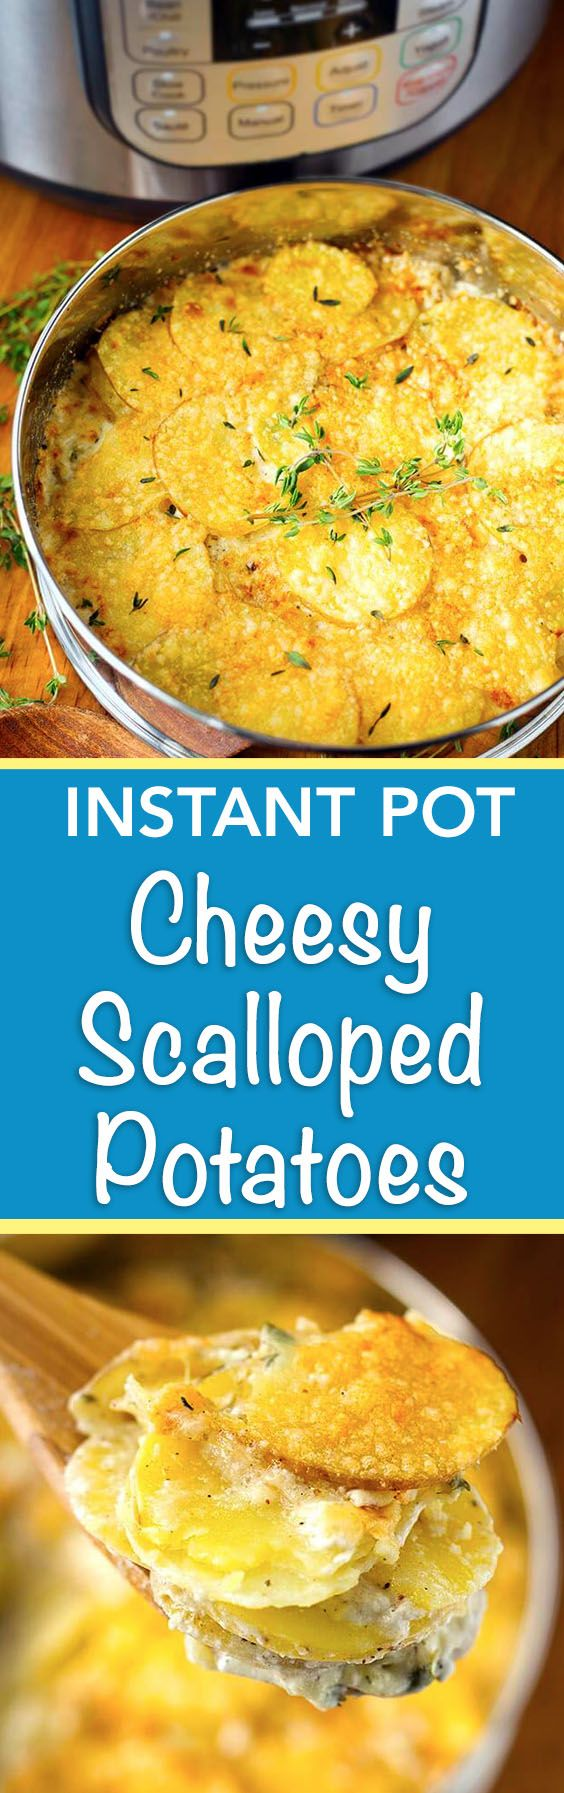 Instant Pot Cheesy Scalloped Potatoes are flavorful with thyme, garlic, and cheese. simplyhappyfoodie.com #instantpotrecipes #instantpot #instantpotscallopedpotatoes #scallopedpotatoes